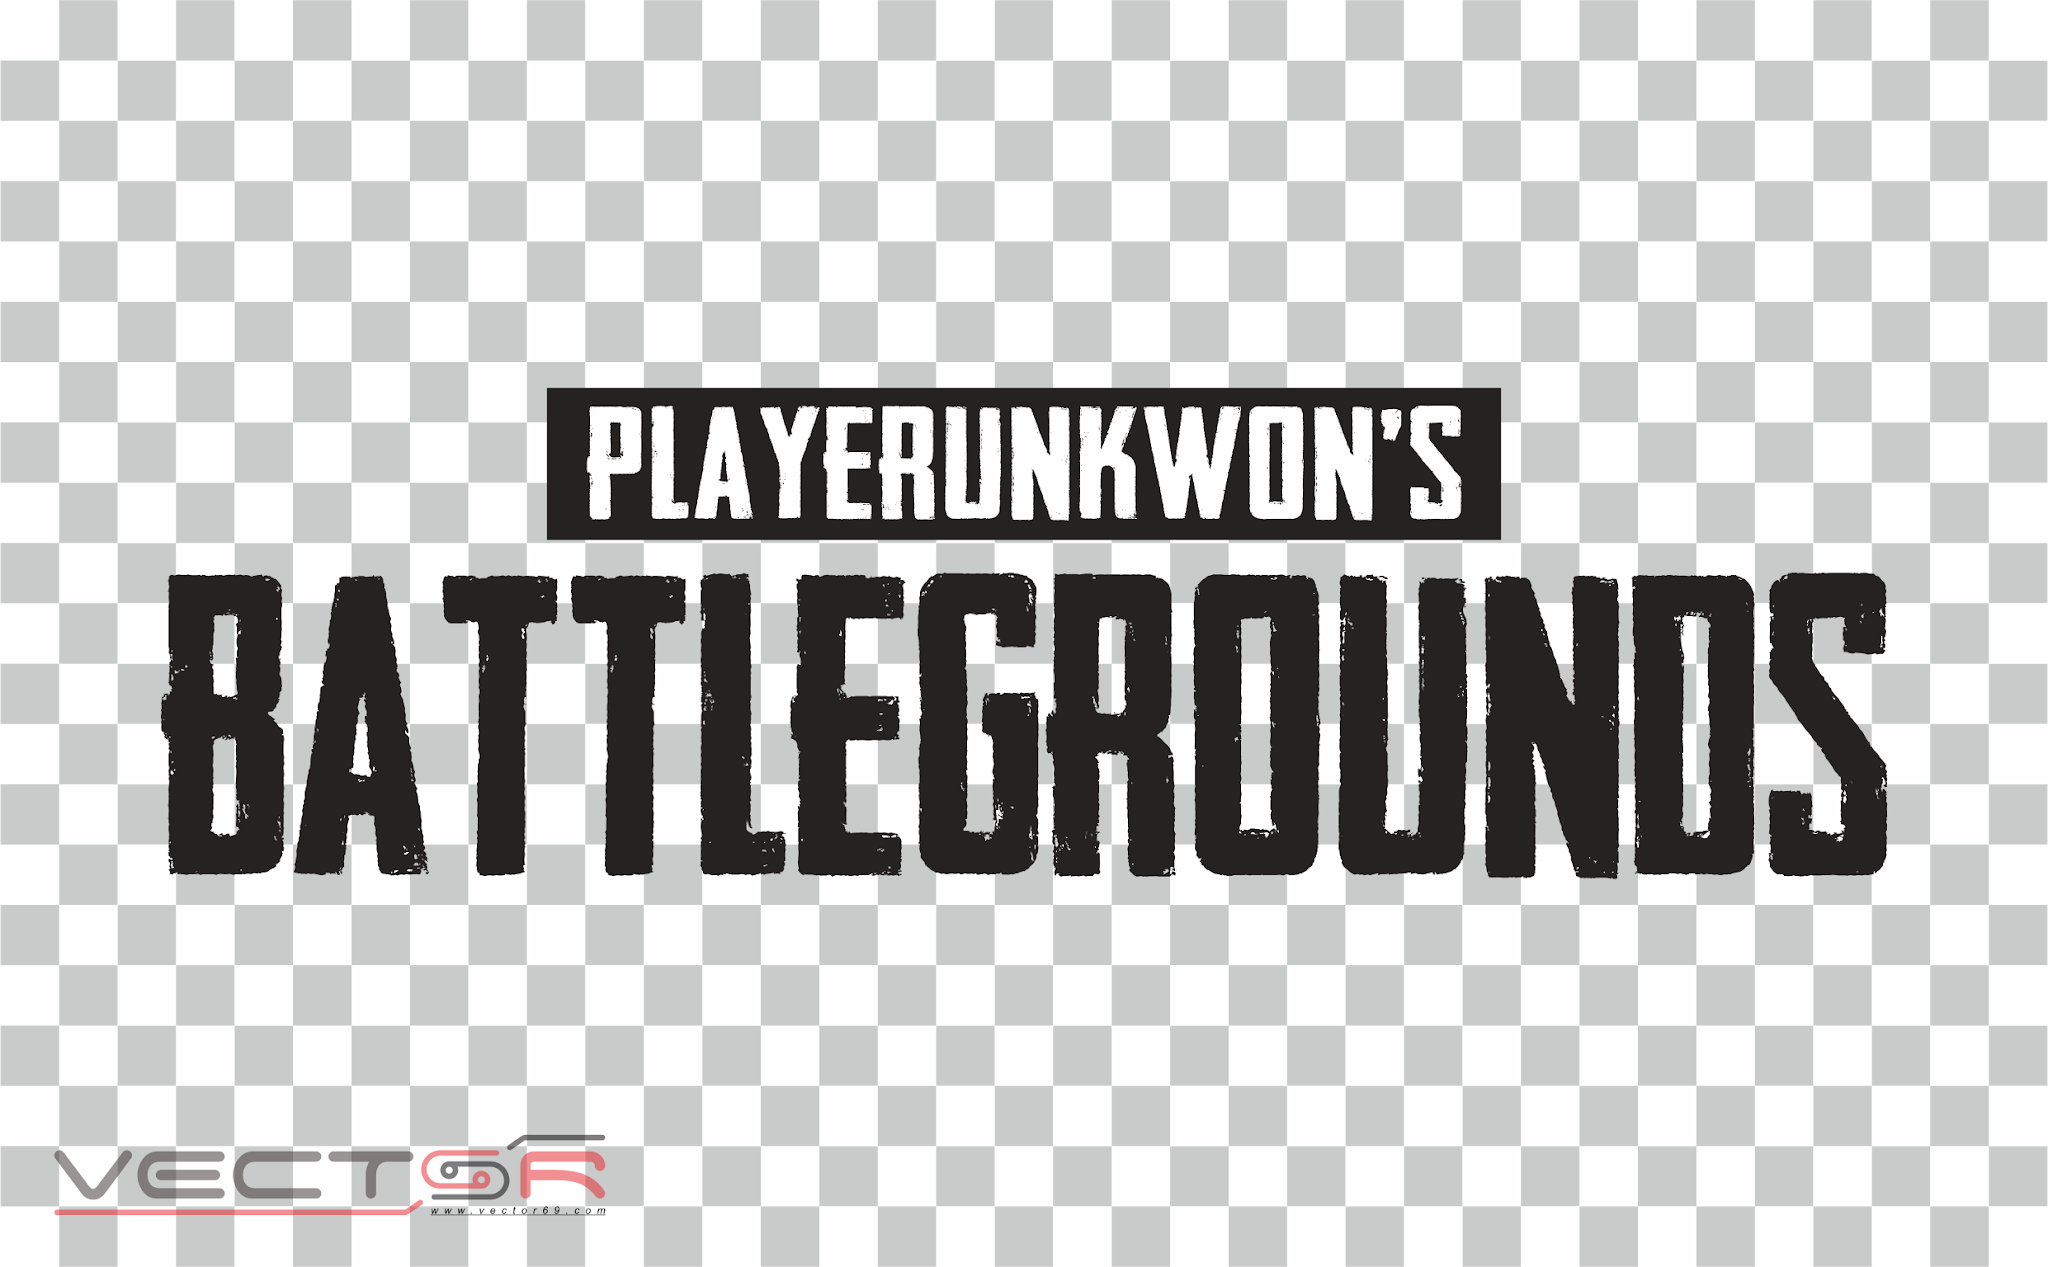 PUBG (PlayerUnknowns BattleGrounds) Logo - Download Vector File PNG (Portable Network Graphics)